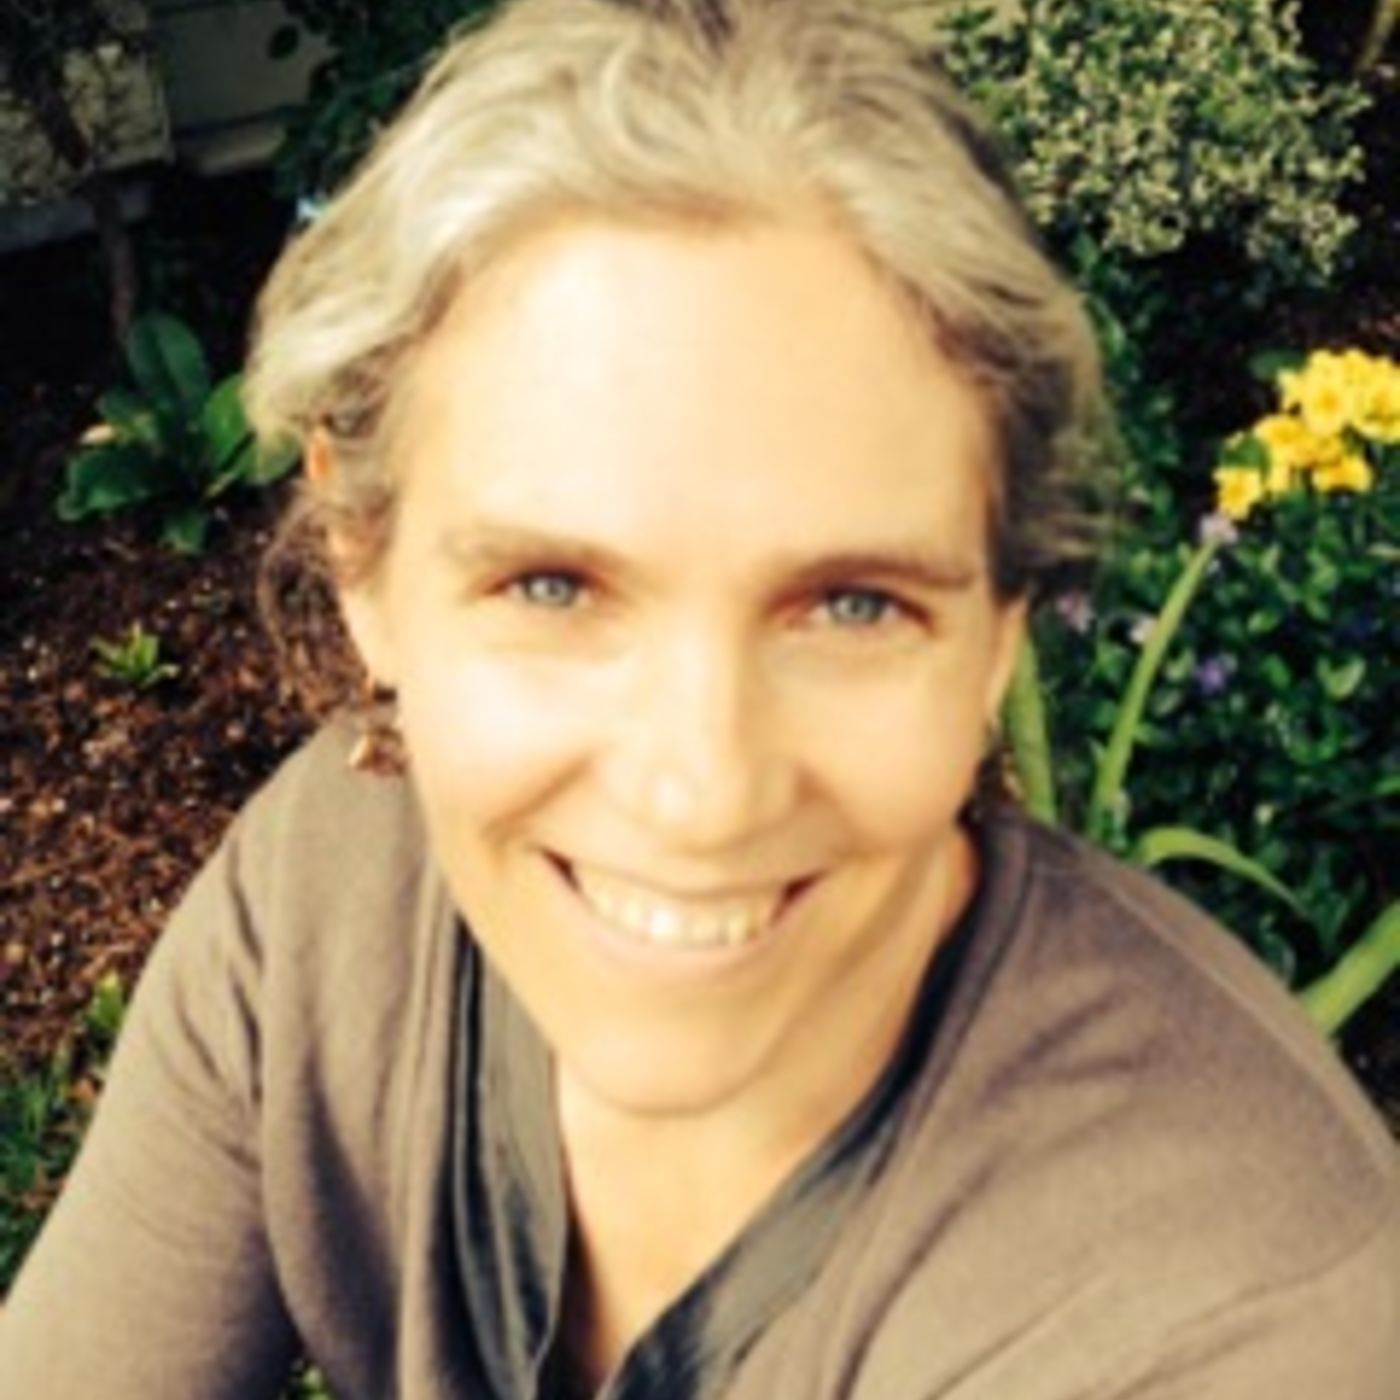 WW Podcast 4 - Talking the Naturopathic approach, seasonal allergies and more with Dr. Ann Holland, ND, LAc